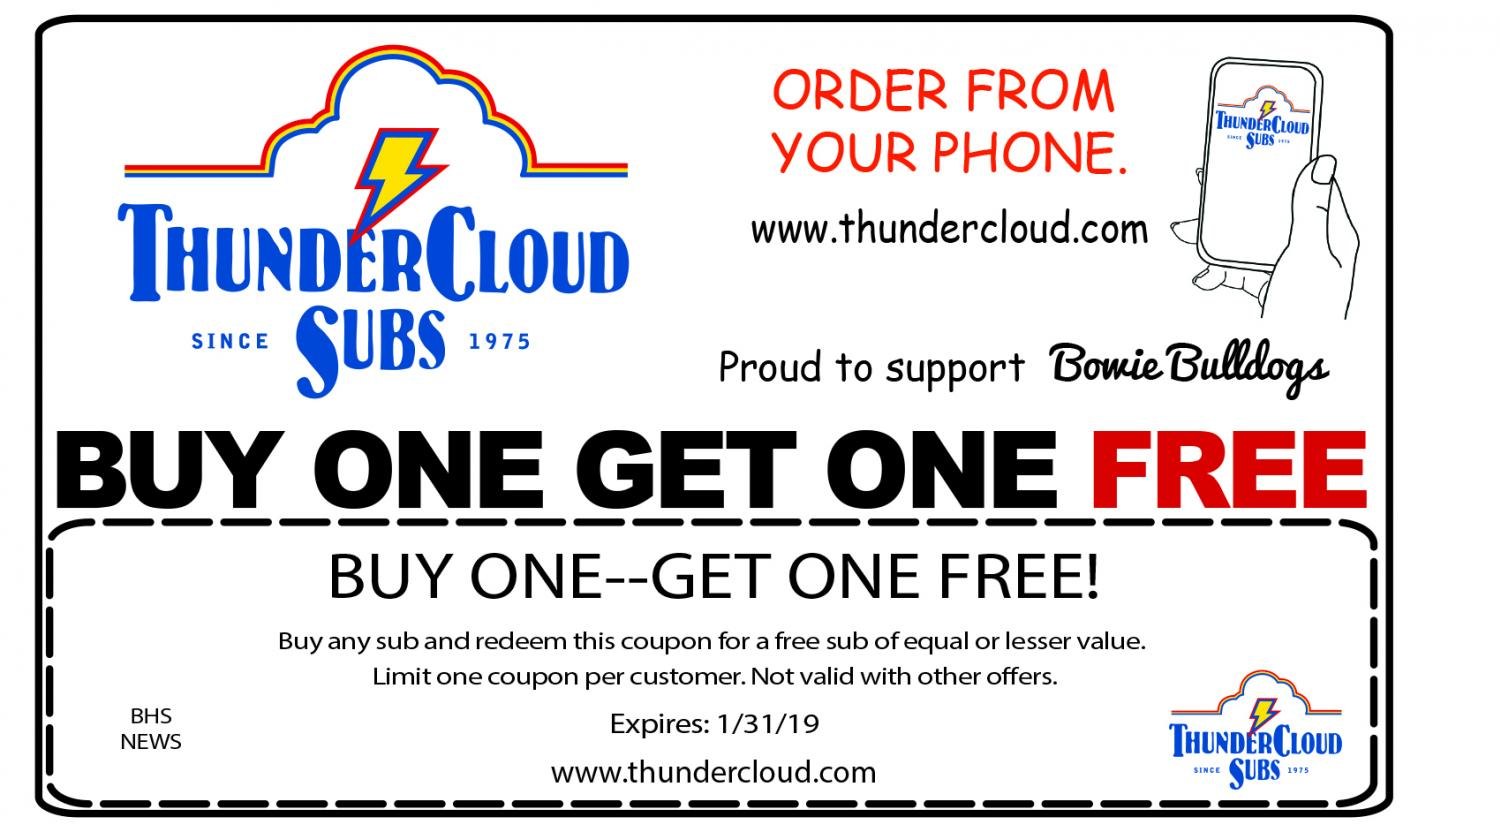 Thundercloud-page-001